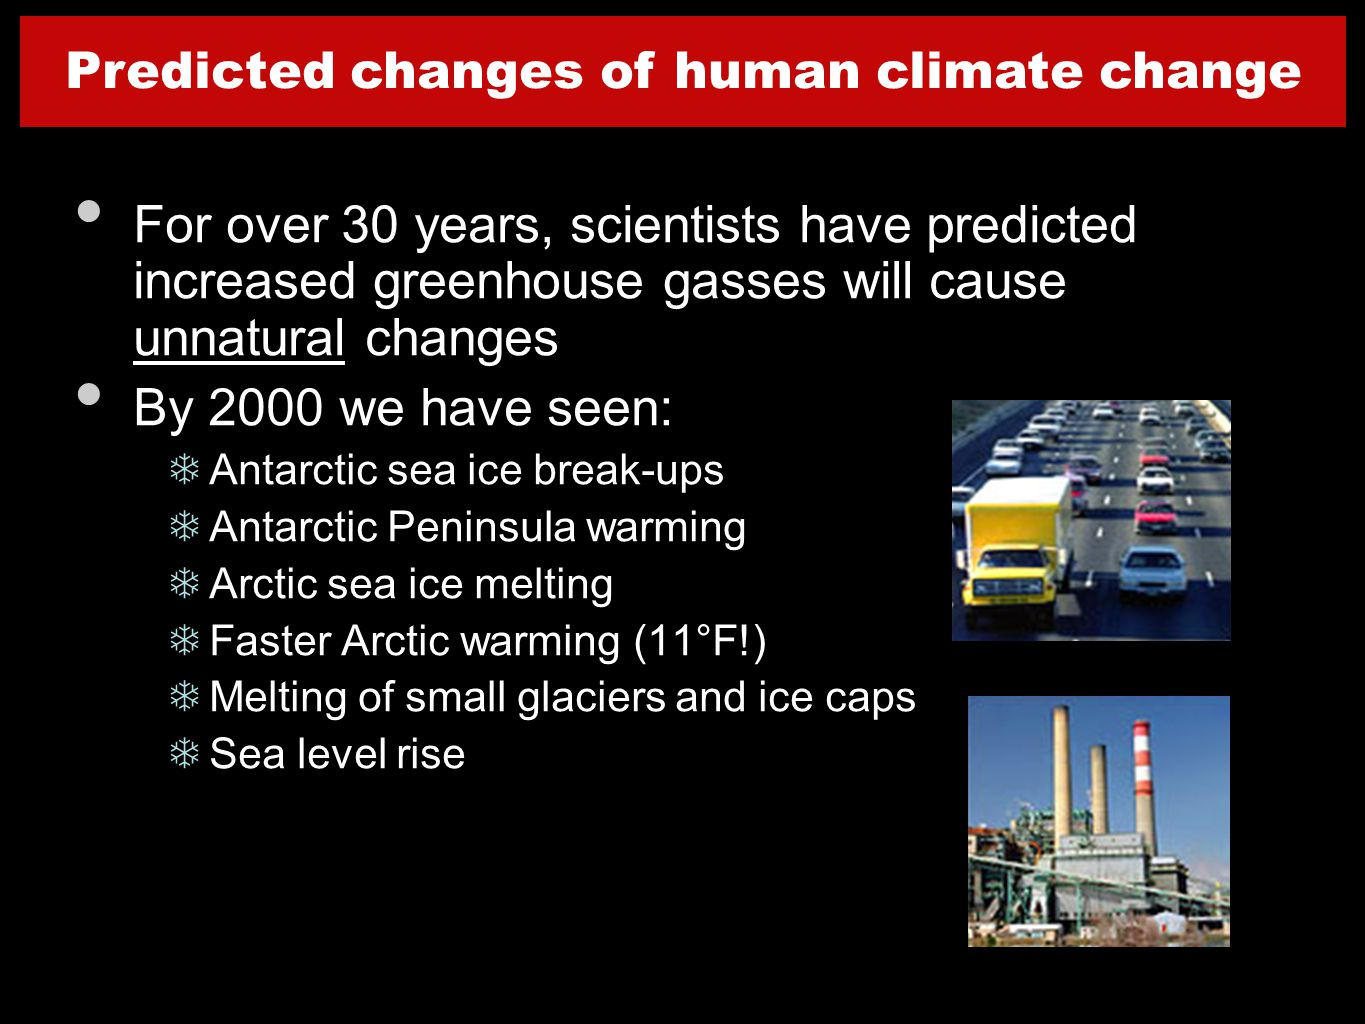 For over 30 years, scientists have predicted increased greenhouse gasses will cause unnatural changes By 2000 we have seen: TAntarctic sea ice break-ups TAntarctic Peninsula warming TArctic sea ice melting TFaster Arctic warming (11°F!) TMelting of small glaciers and ice caps TSea level rise Predicted changes of human climate change